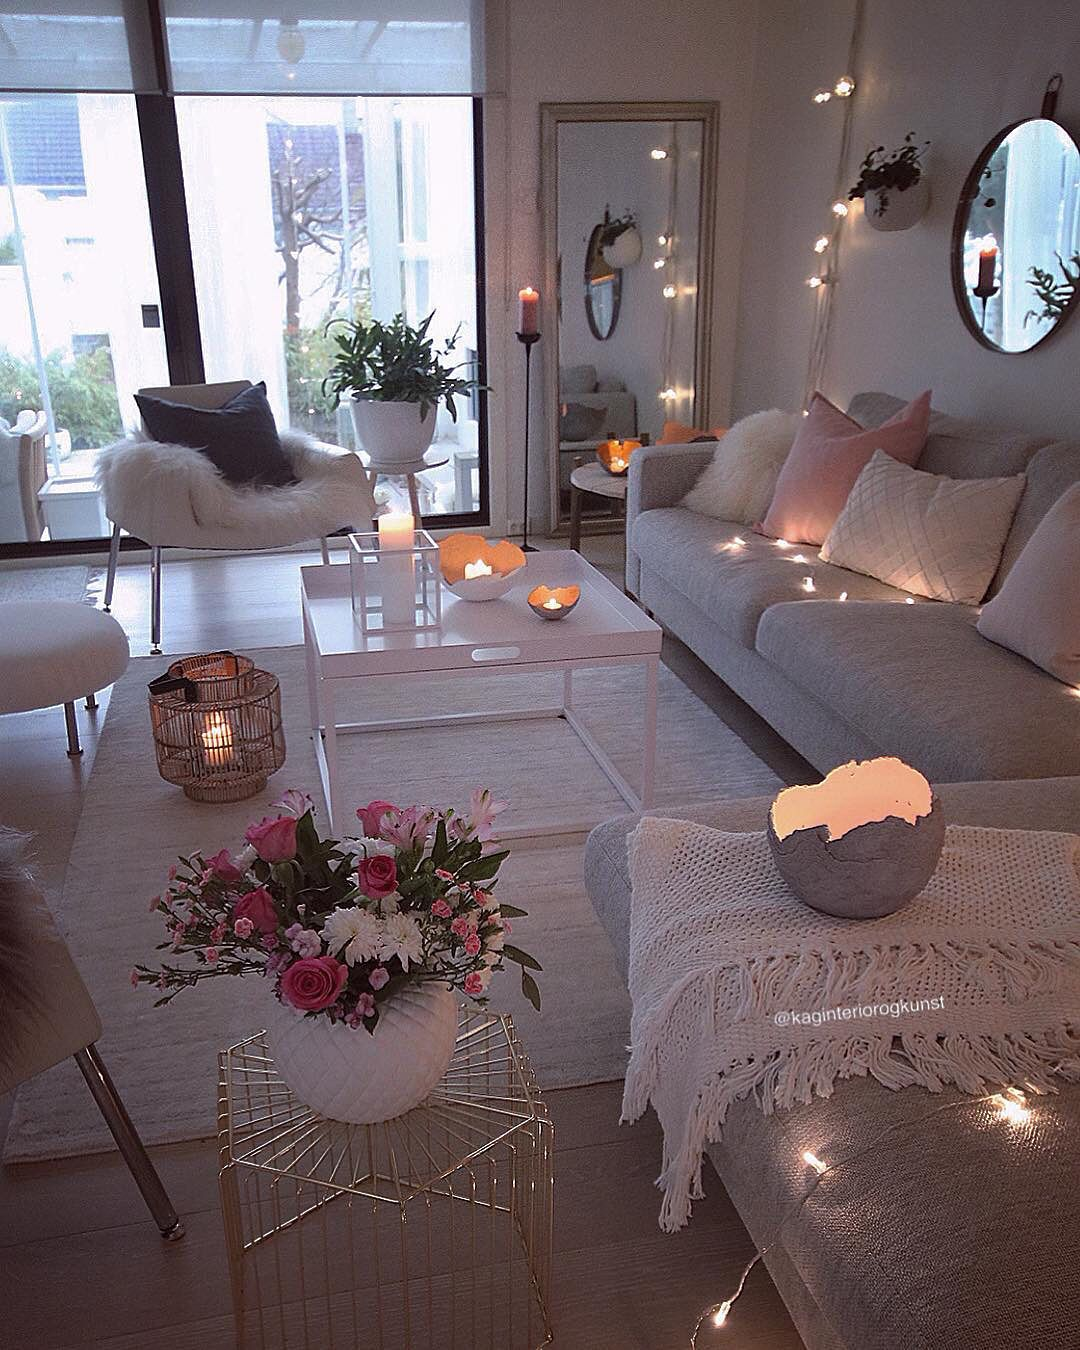 So Comfy Yes Or No Design Home Homedecor Shopping Link In Bio For More Fashion Check Our Page Follow